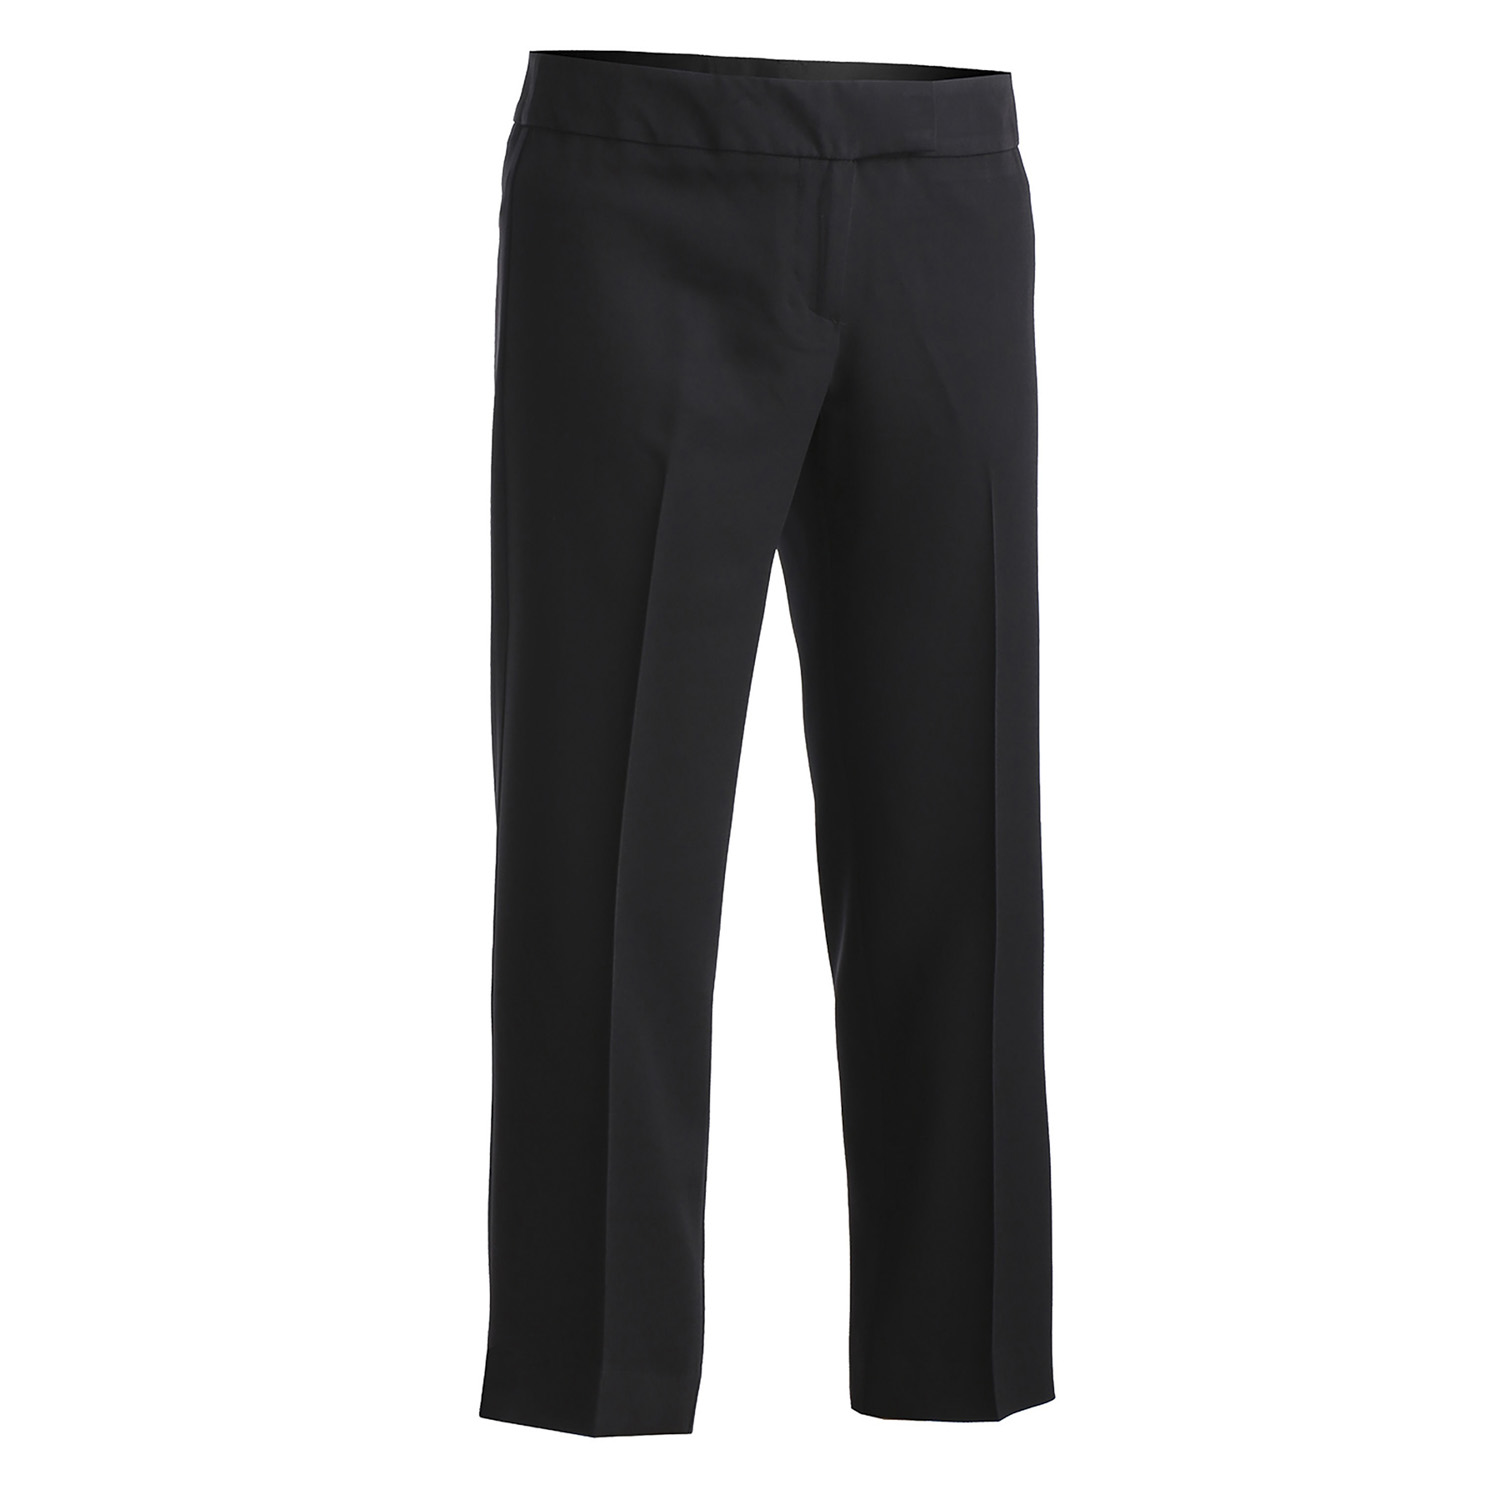 Edwards Garment Women's Low Rise Flat Front Boot Cut Pant